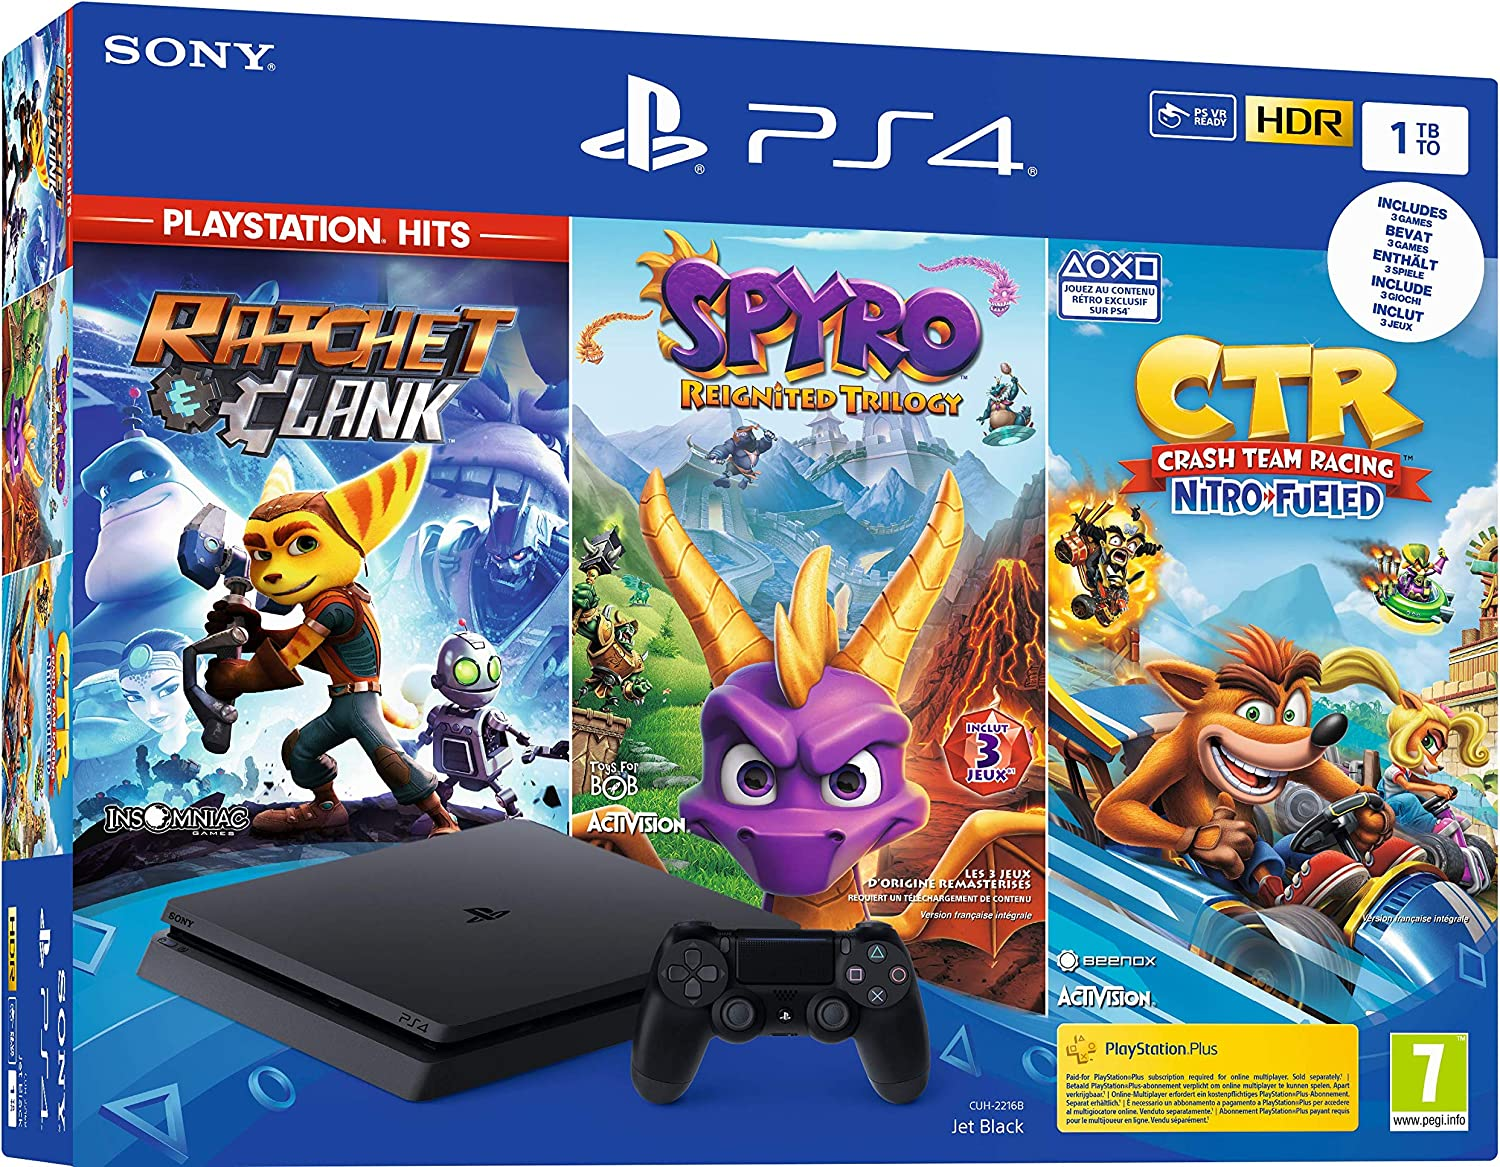 PS4 1 To Crash Team Racing + Spyro + RC Hits - noire [Importación francesa]: Amazon.es: Videojuegos